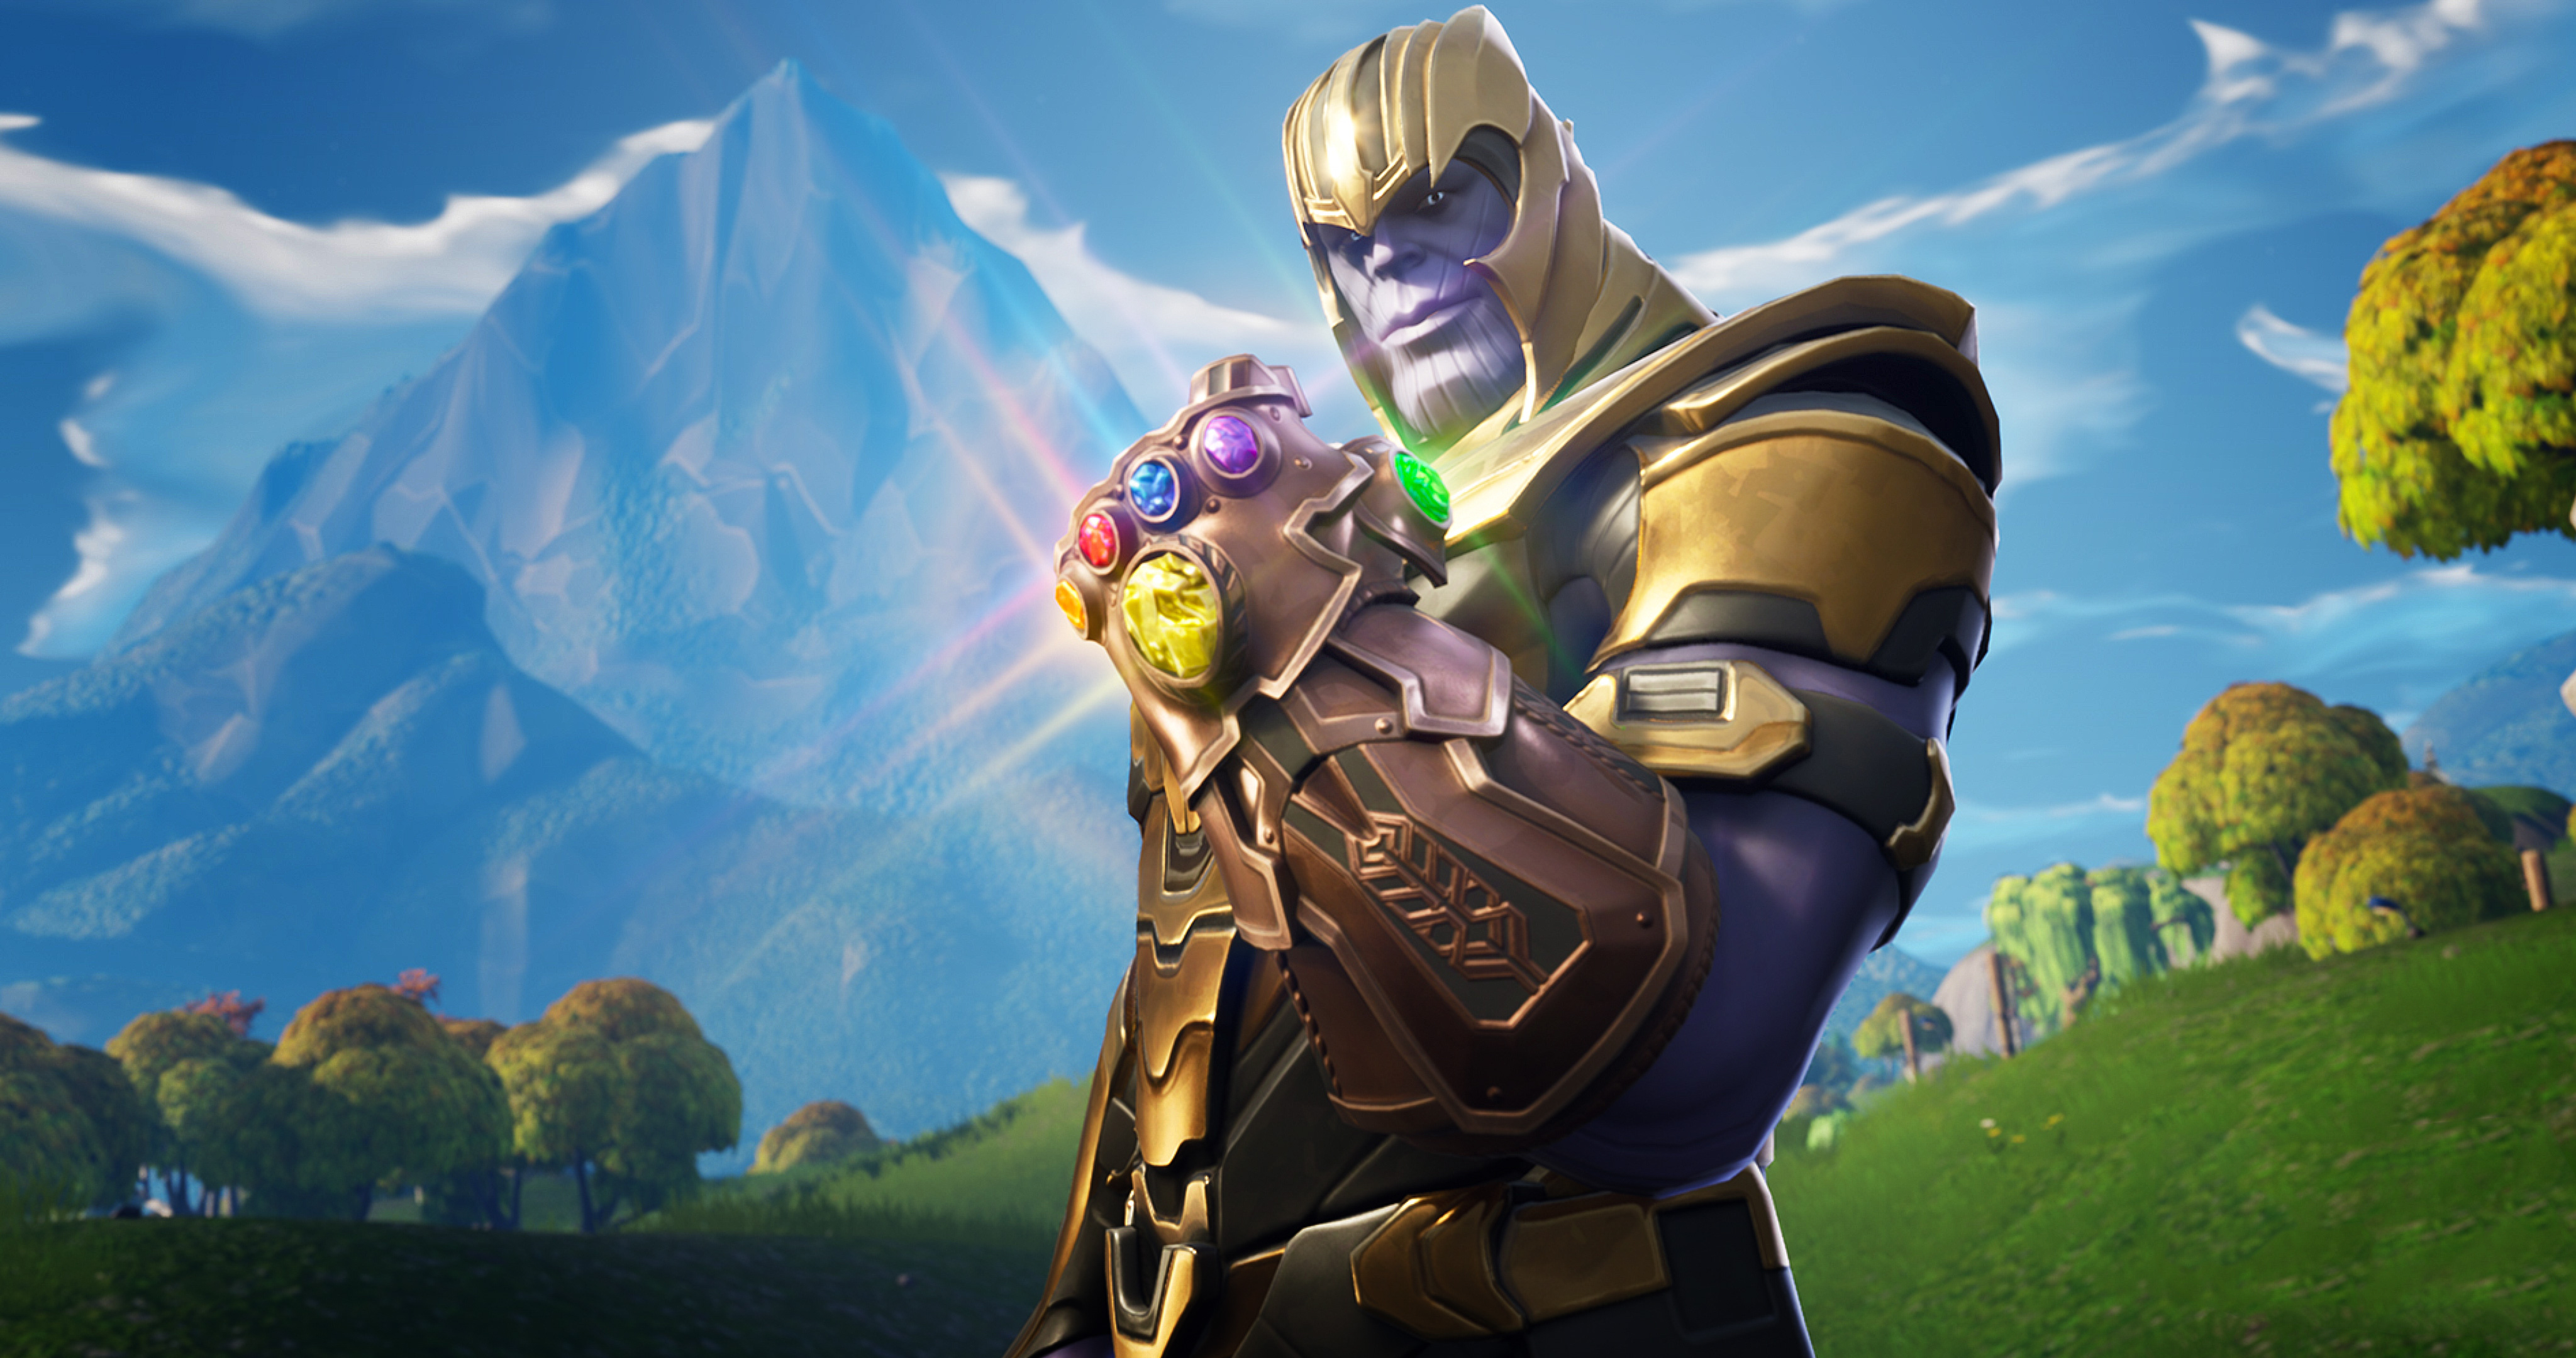 Thanos In Fortnite Battle Royale HD Games 4k Wallpapers Images Backgrounds Photos And Pictures